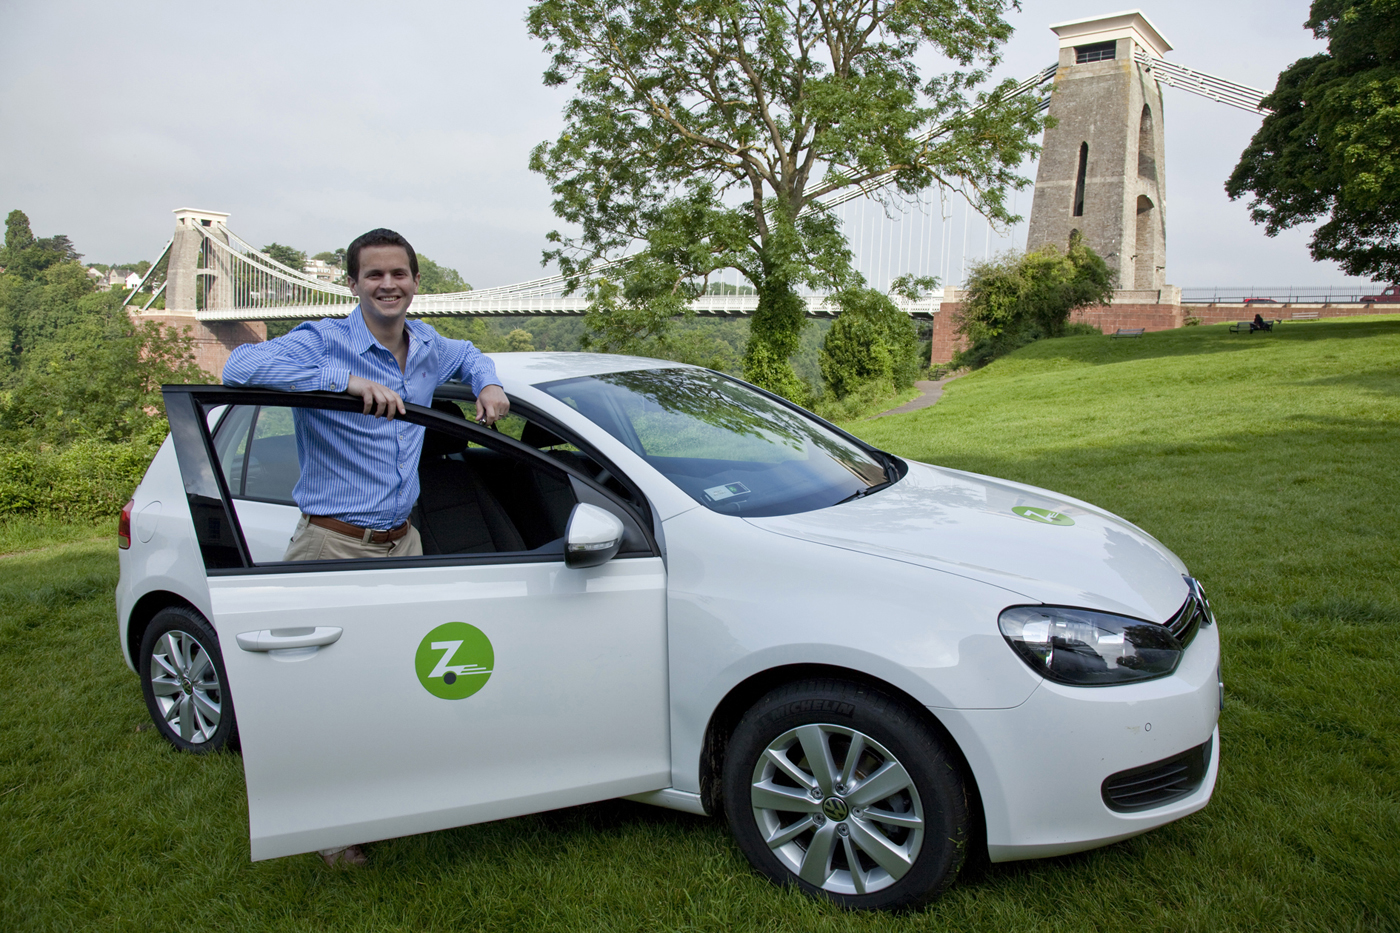 Man standing next to a zipcar vehicle with the door open with the Bristol suspension bridge in the background